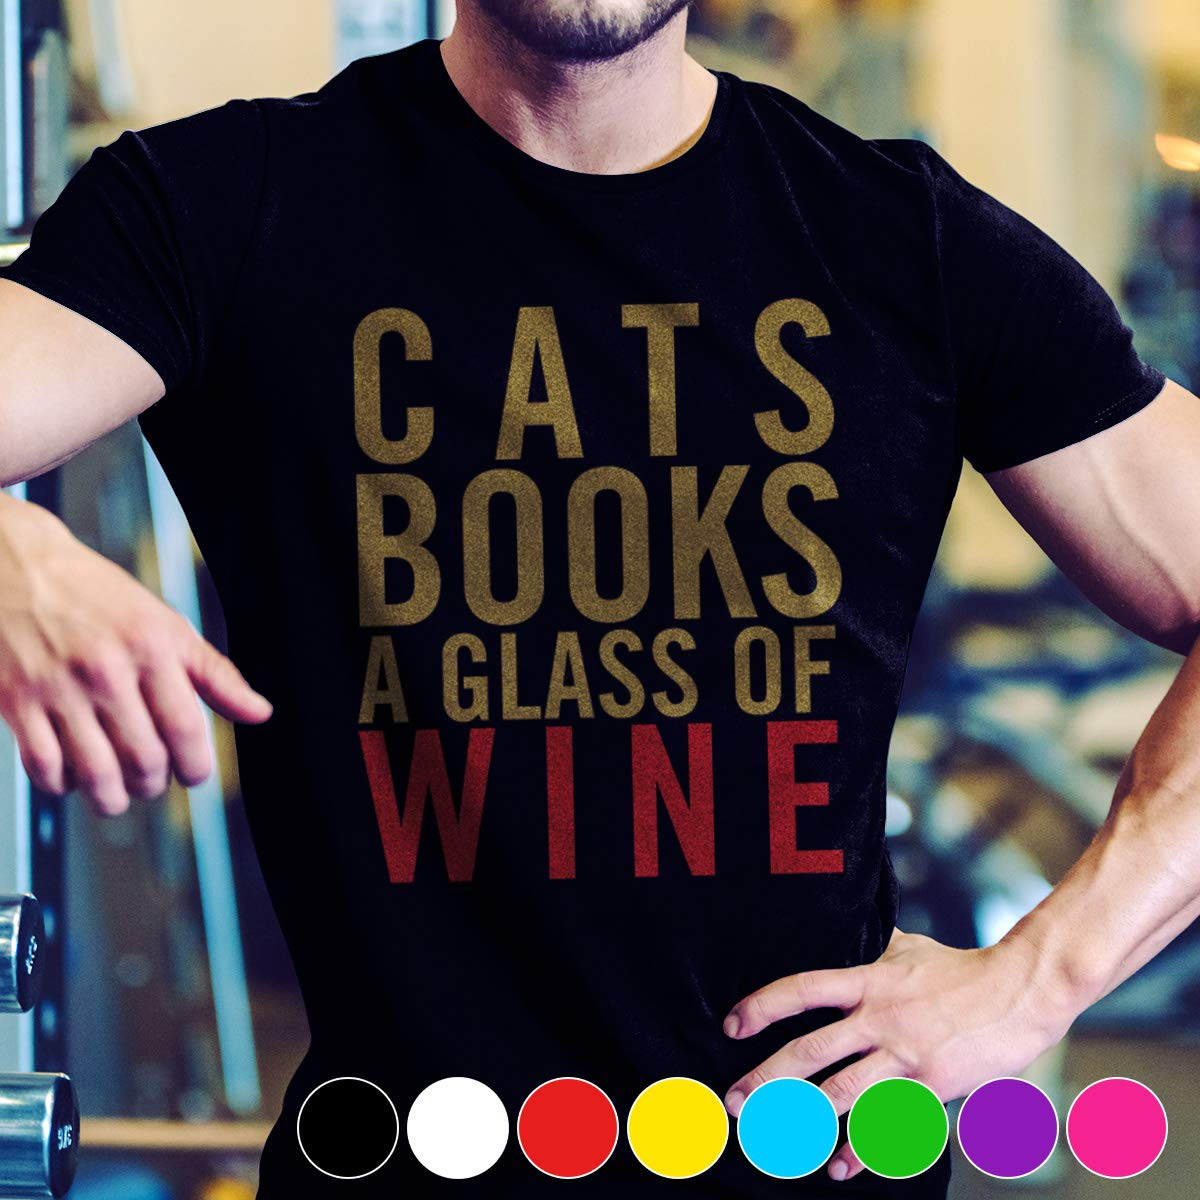 Wine Cats Books A Glass Of Wine Tshirt For Cat Lovers T Shirt